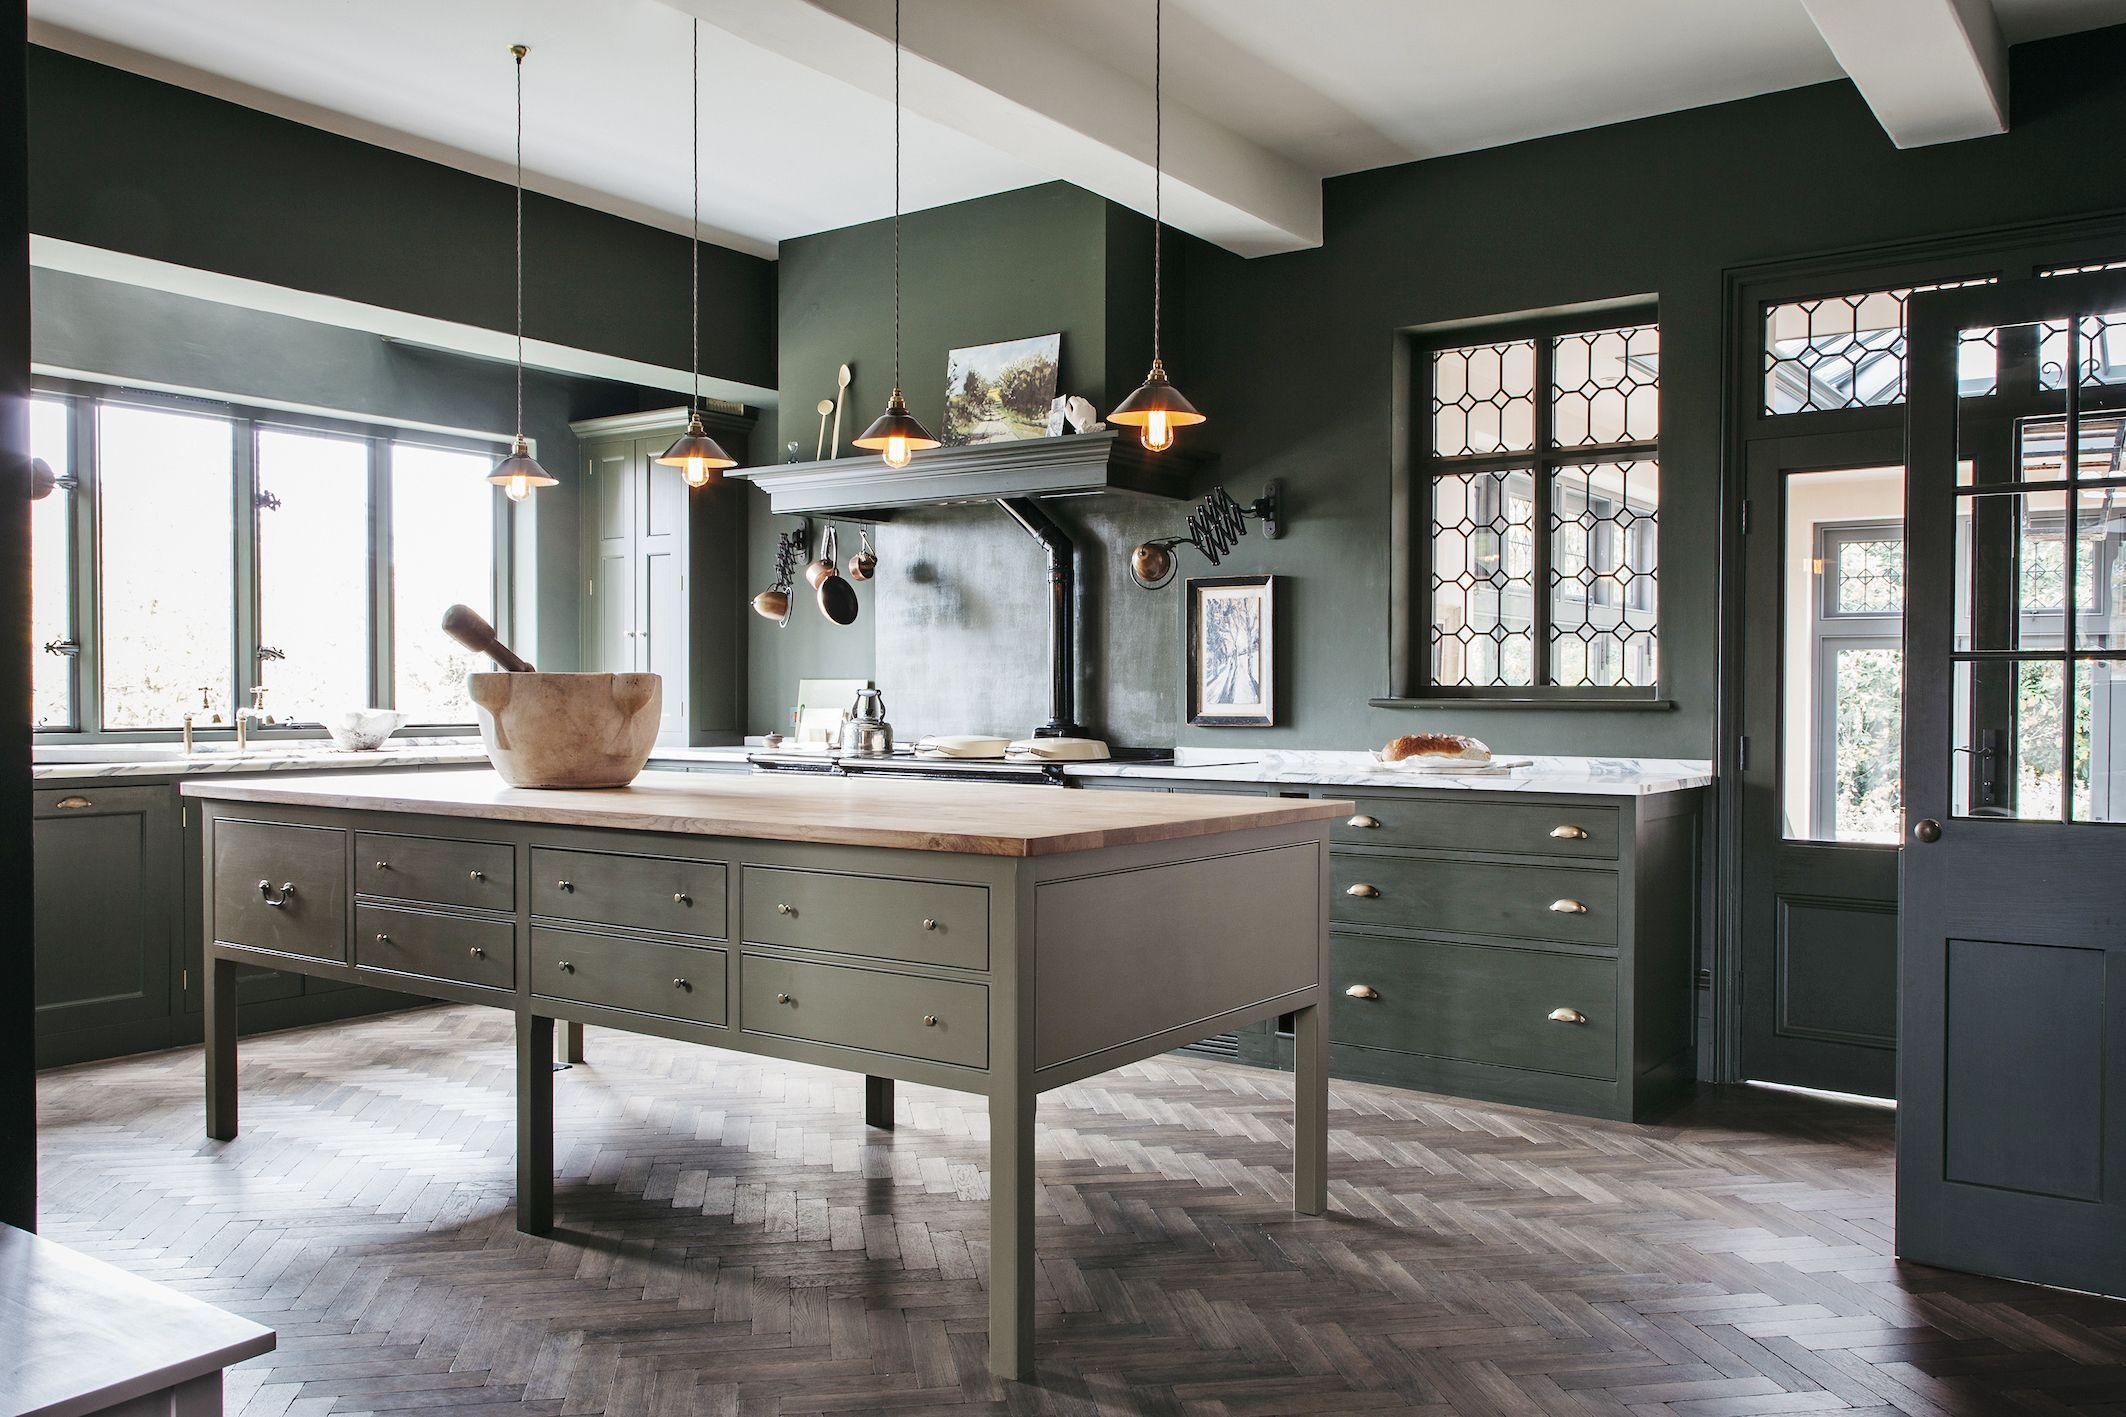 Get The English Country Kitchen Of Your Dreams With These